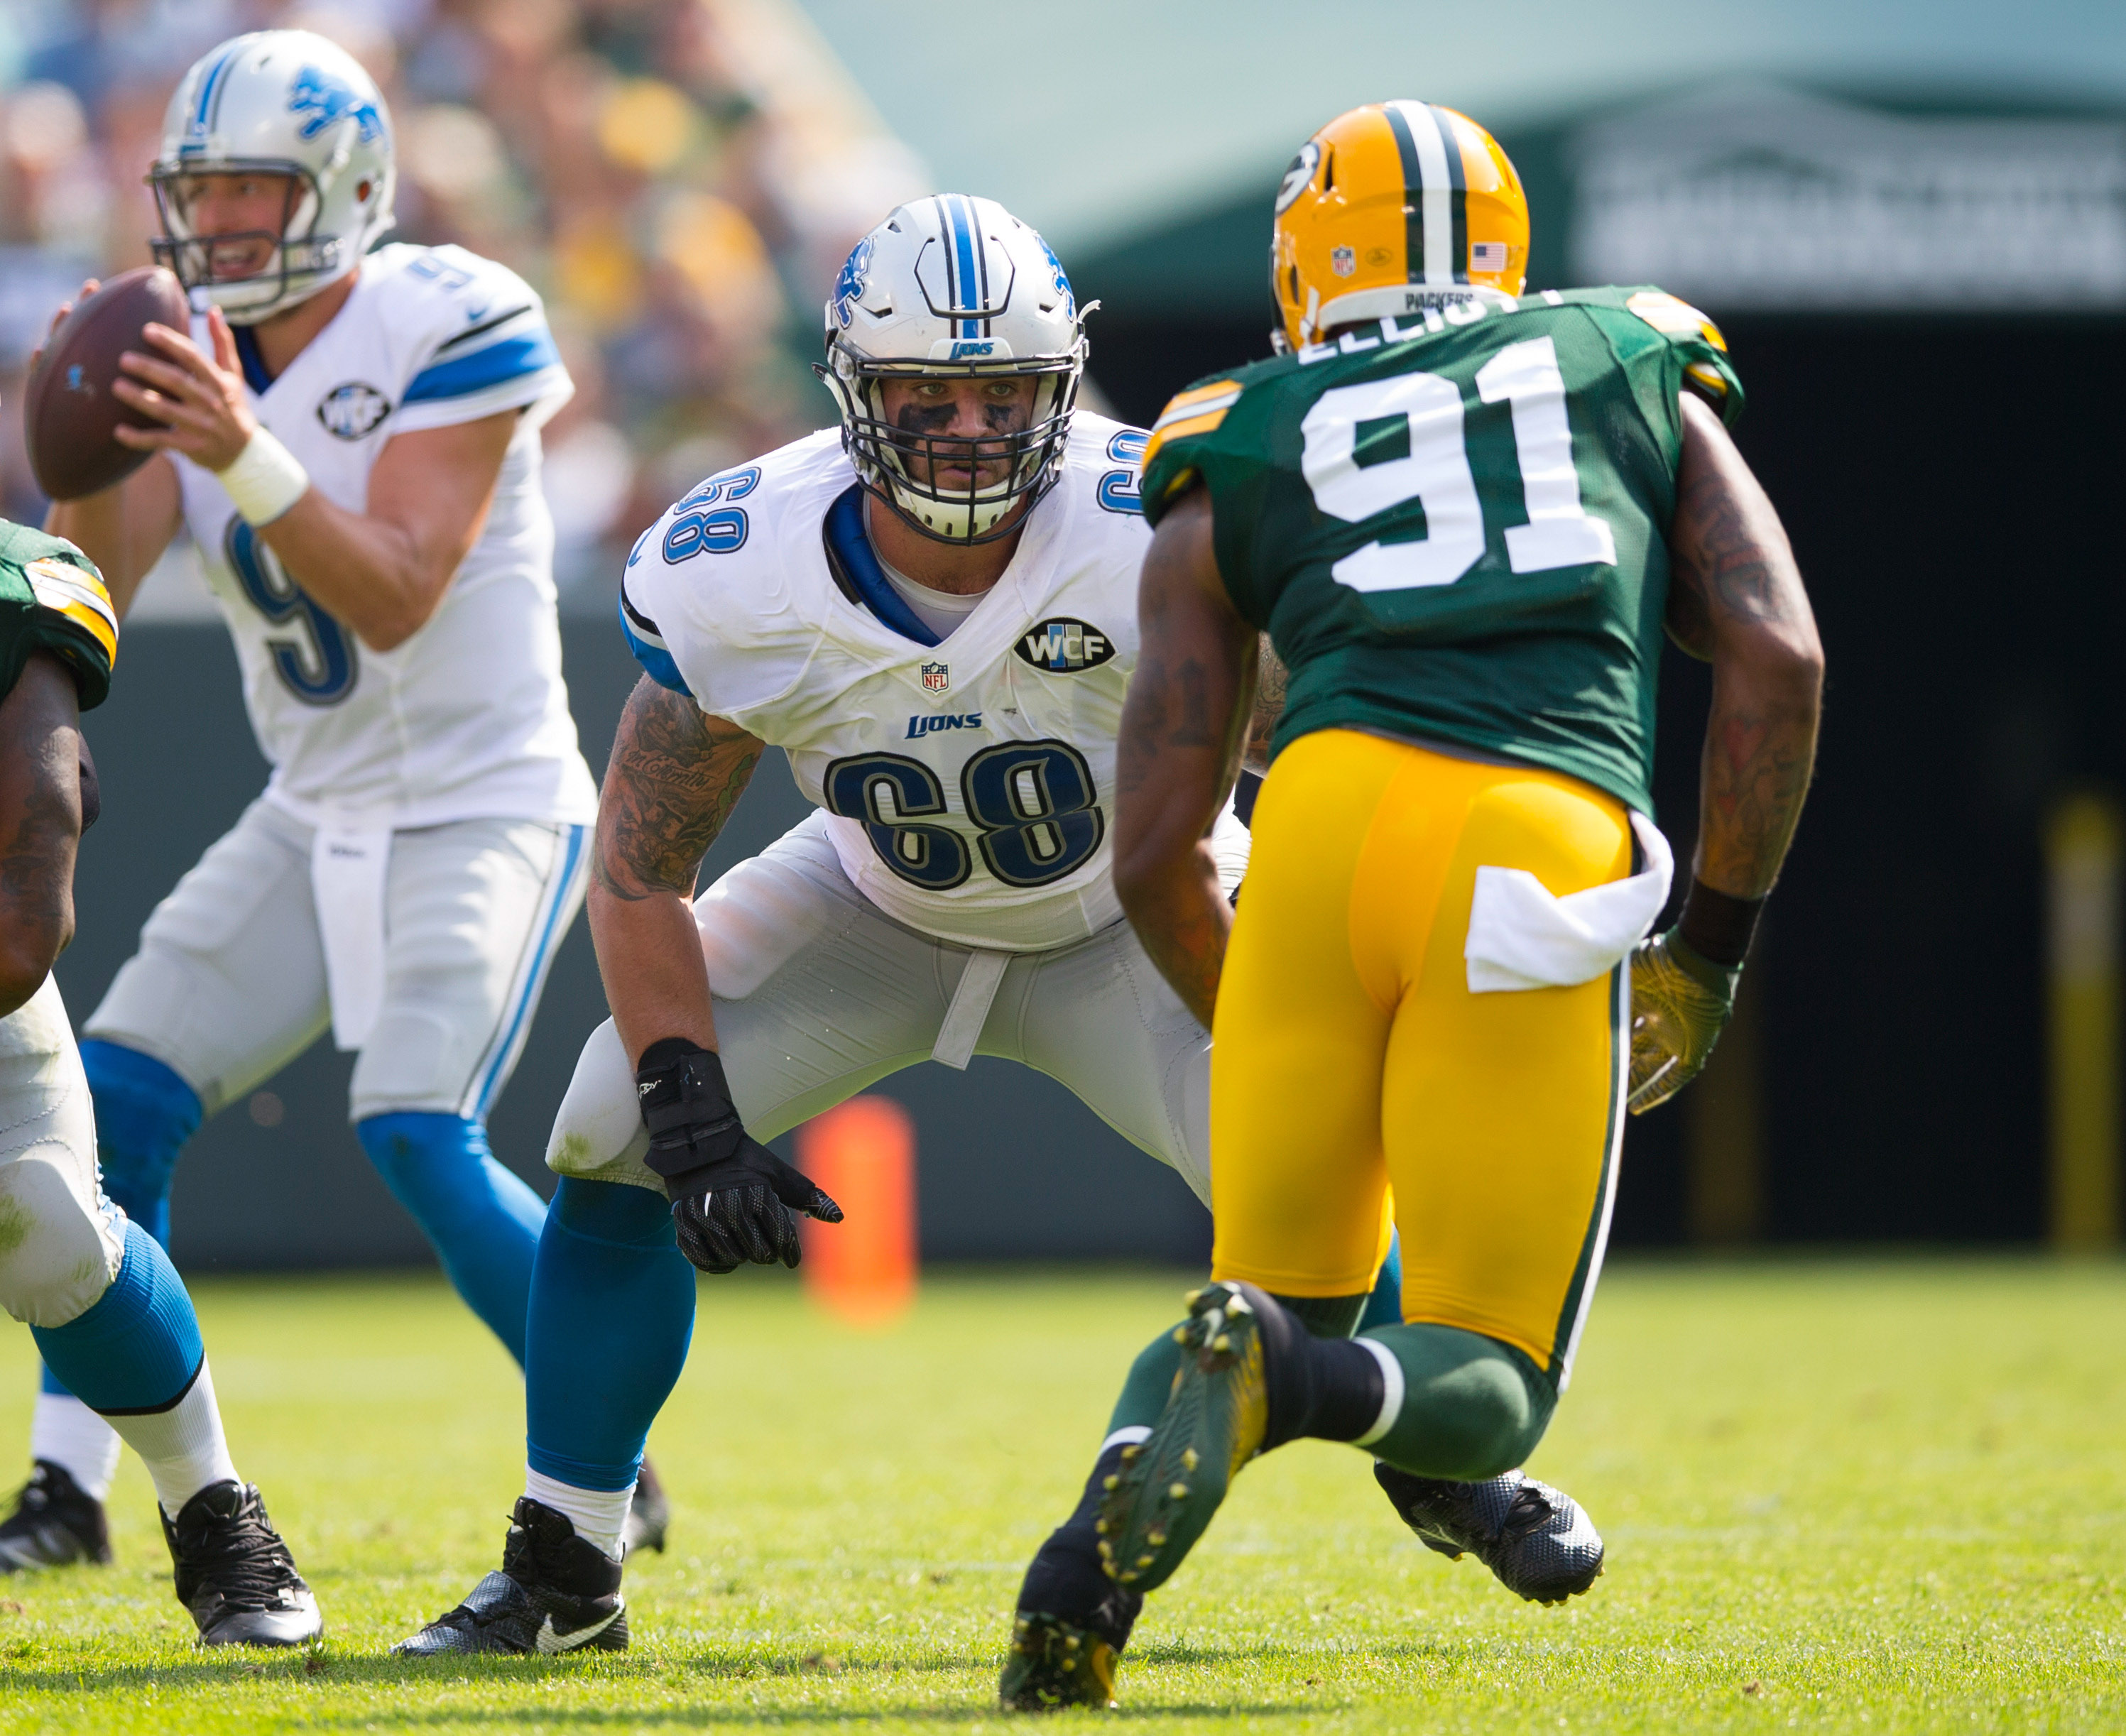 9576622-nfl-detroit-lions-at-green-bay-packers